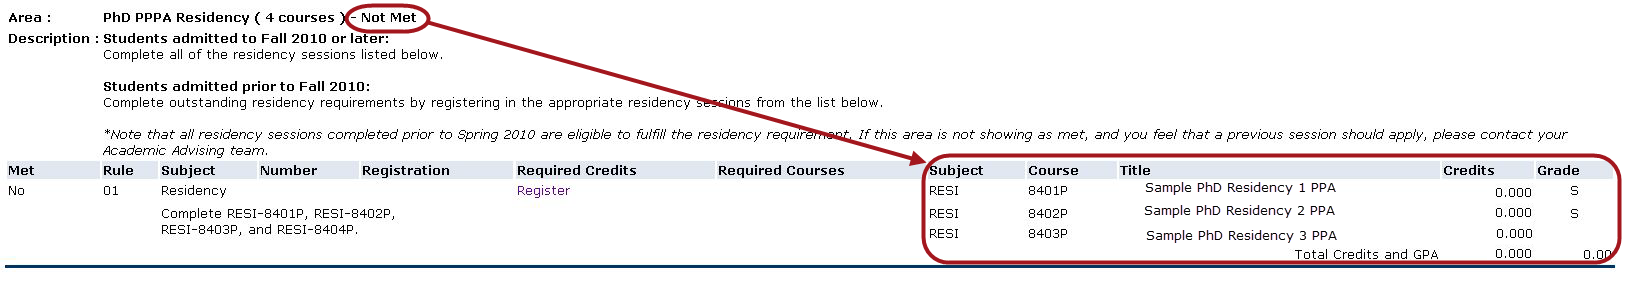 screenshot of residency section of degree audit